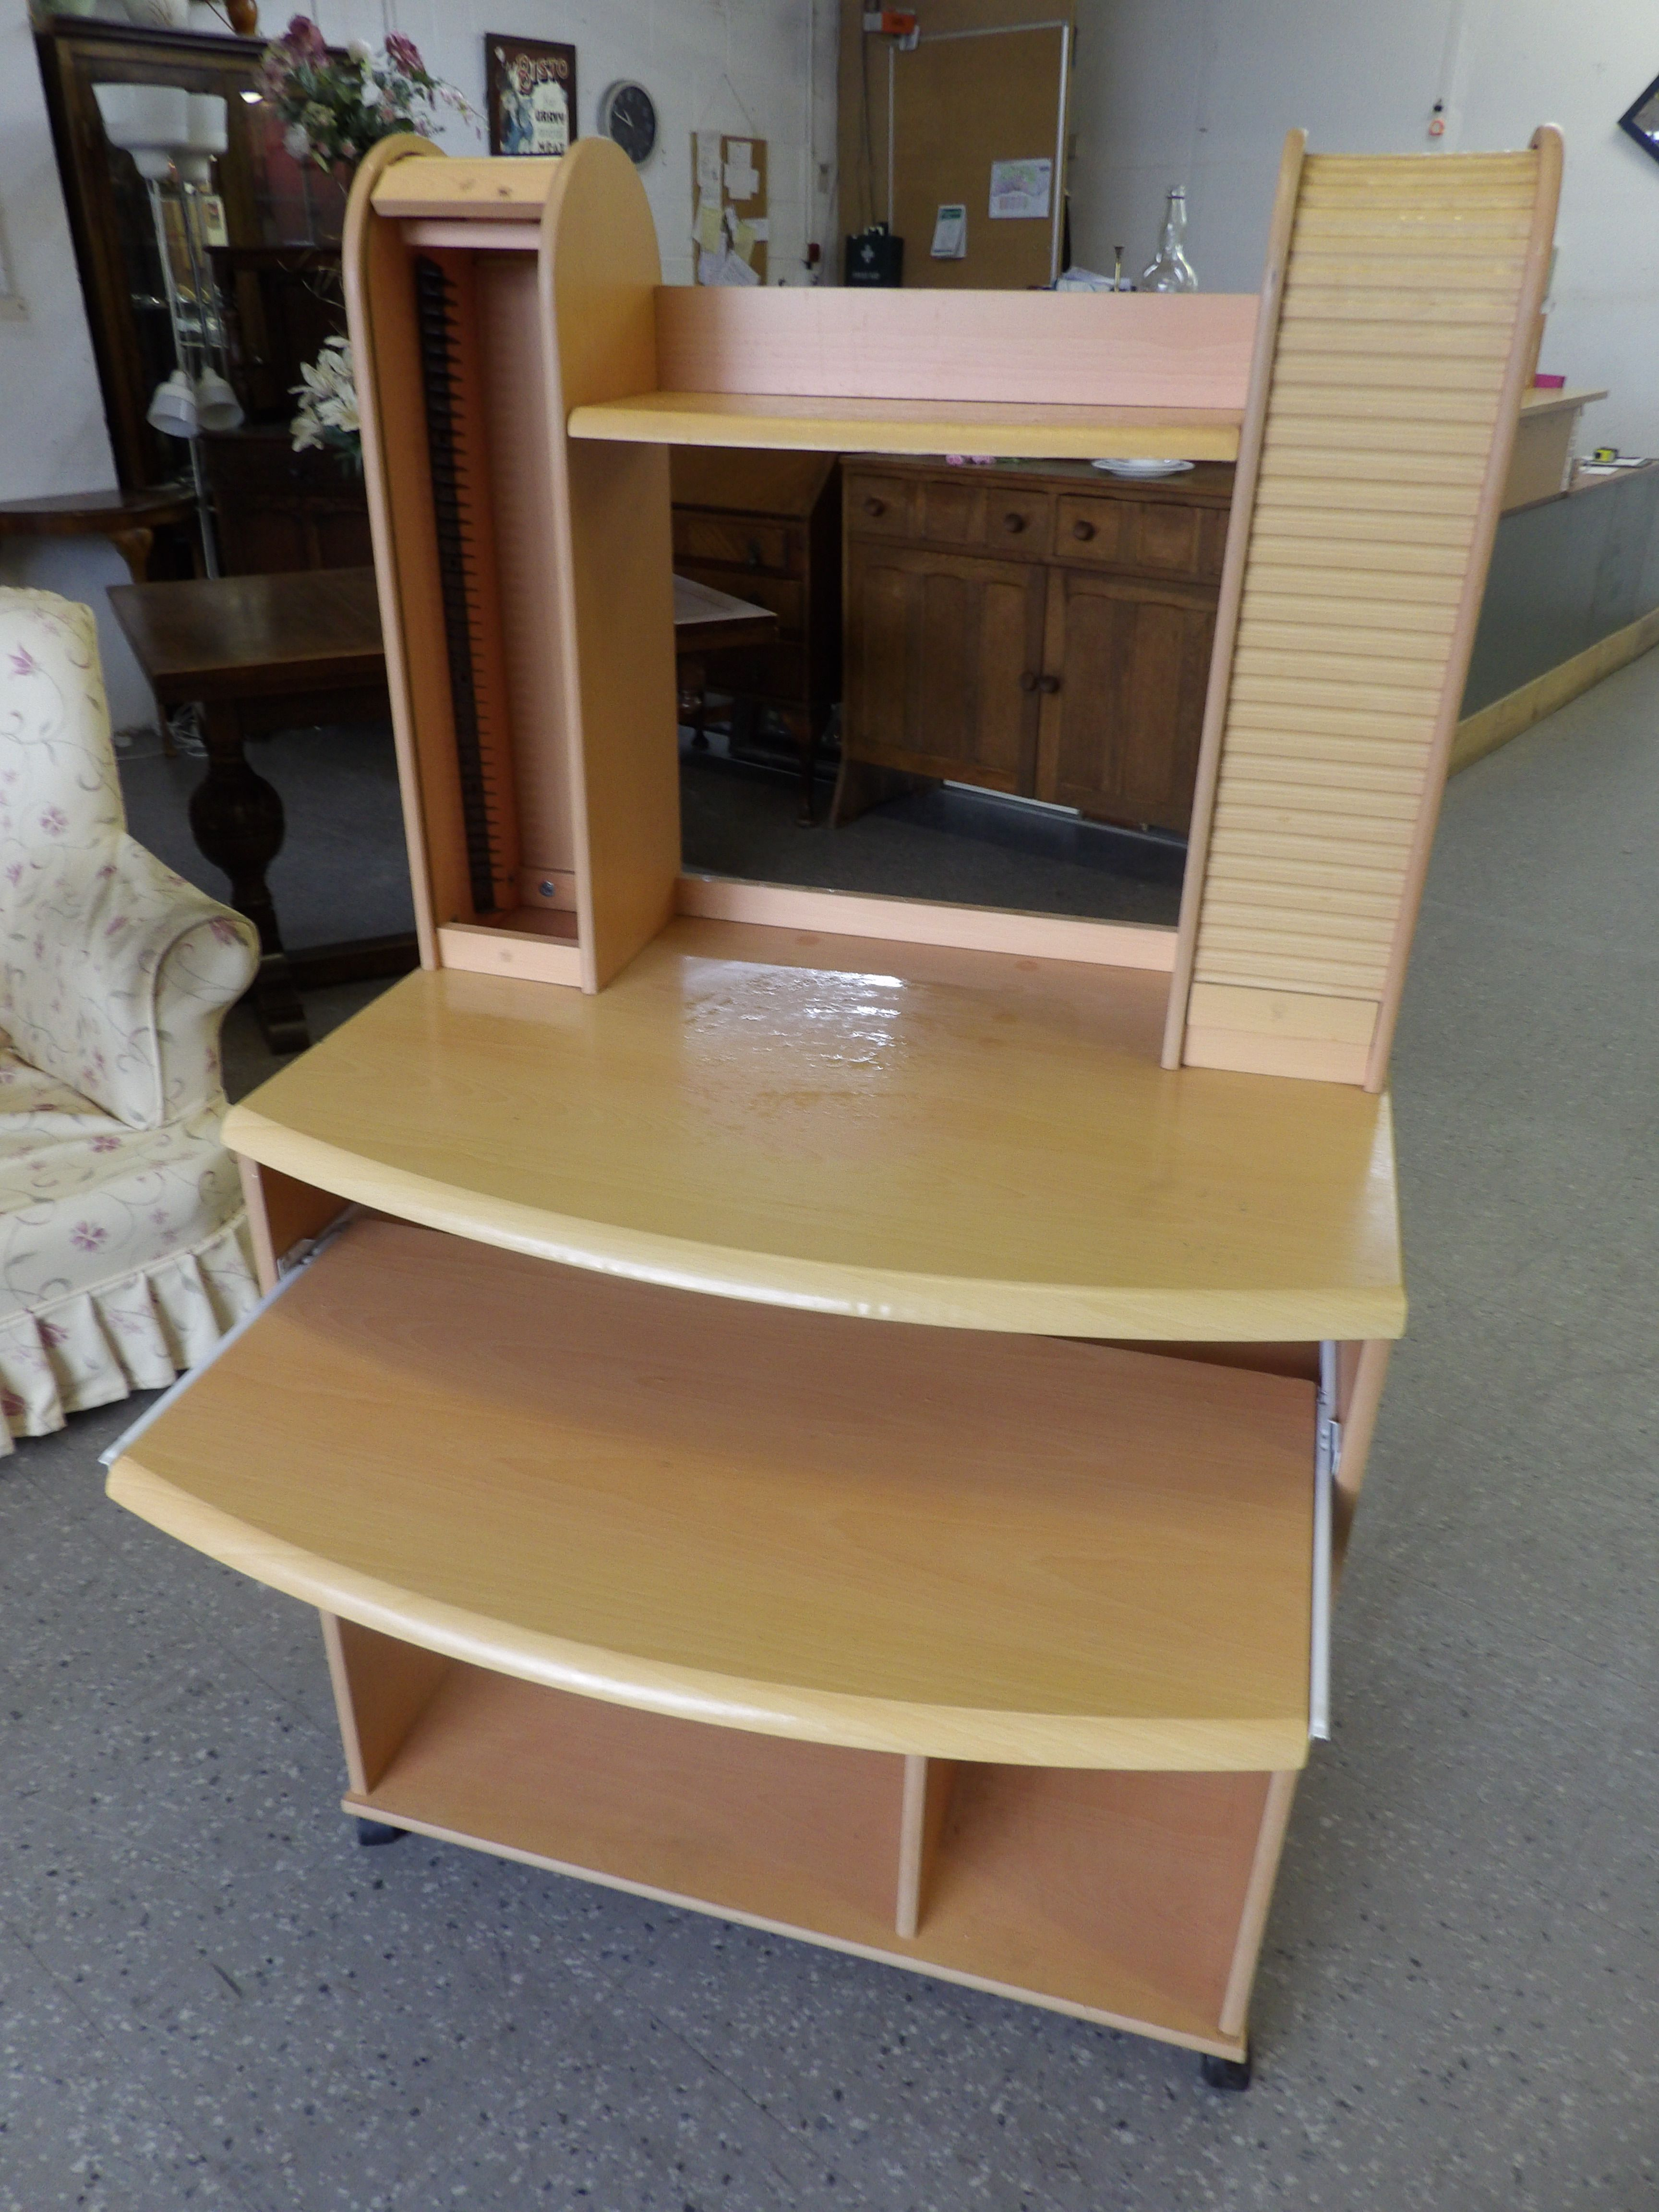 large computer desk with cd rack and lower shelves on casters rh pinterest com Office Shelves shelving on casters for library